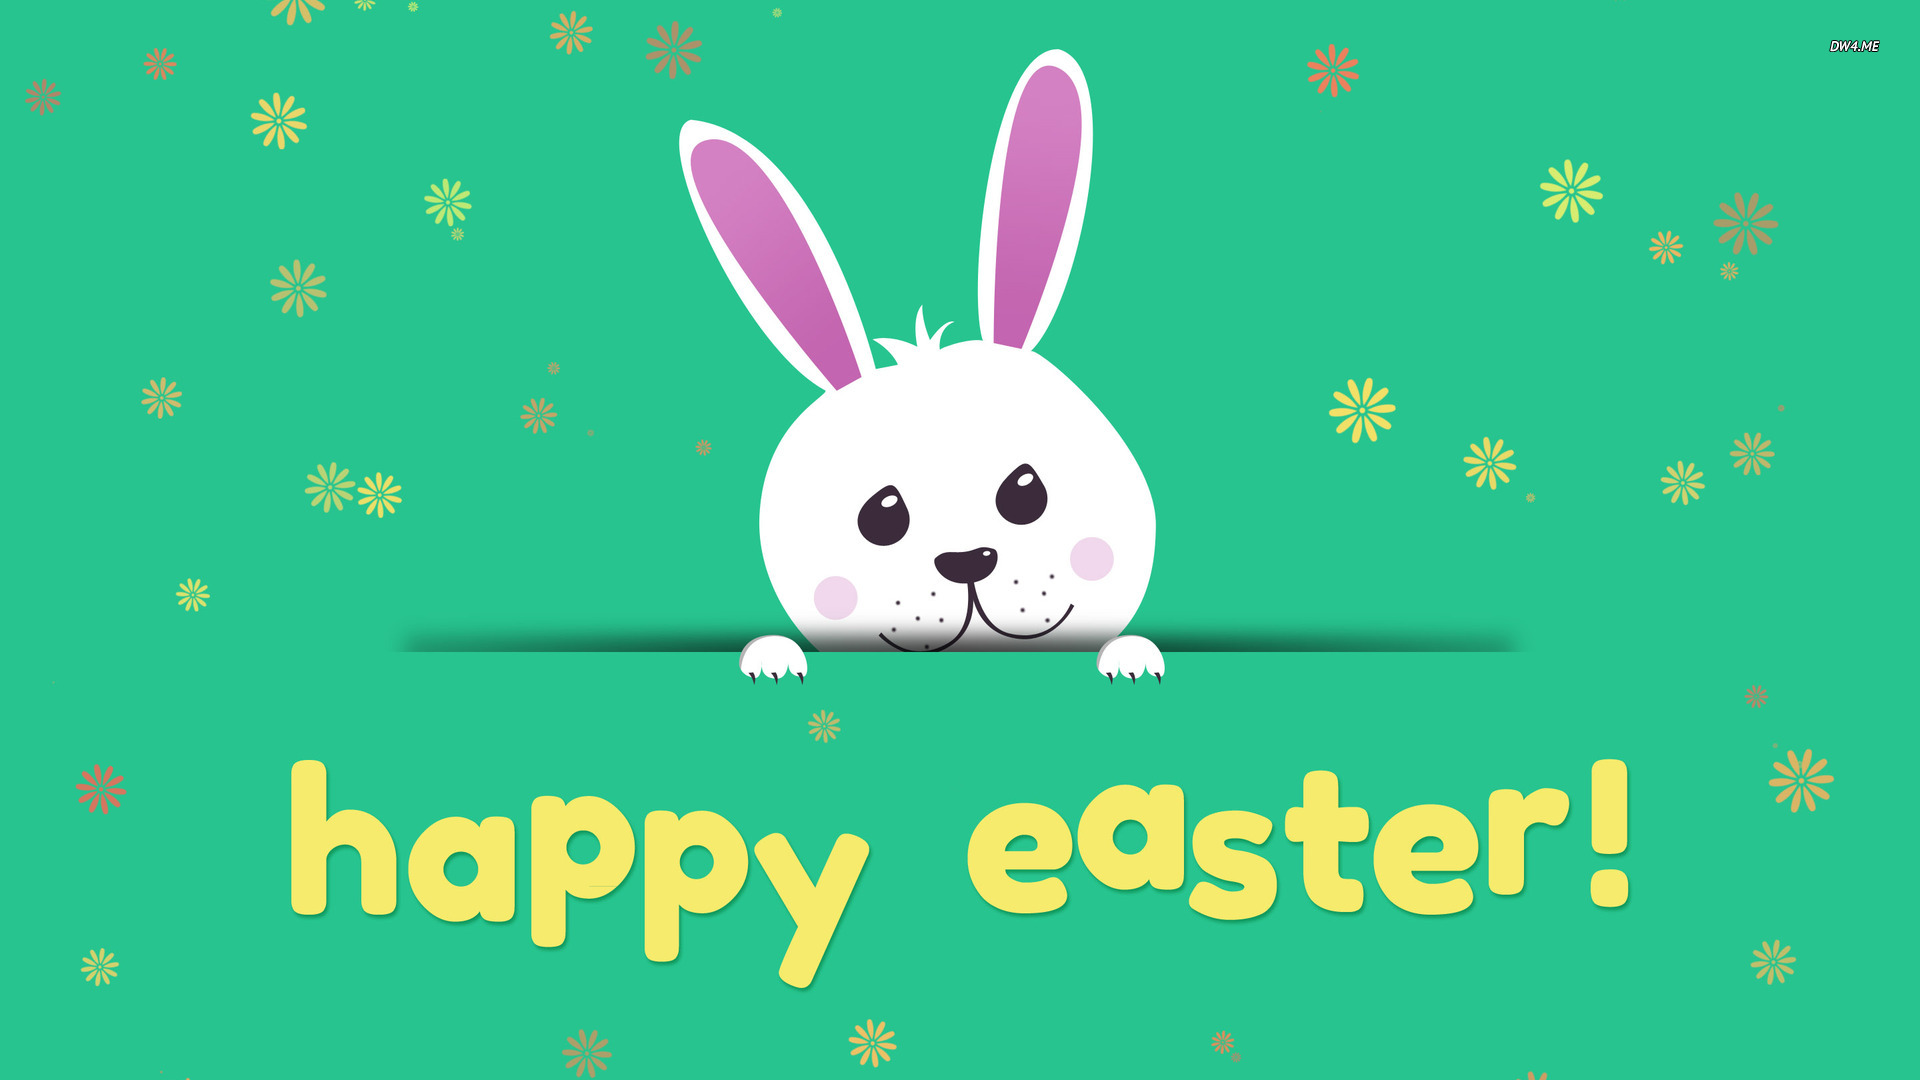 Easter bunny wallpaper   Holiday wallpapers   2202 1920x1080